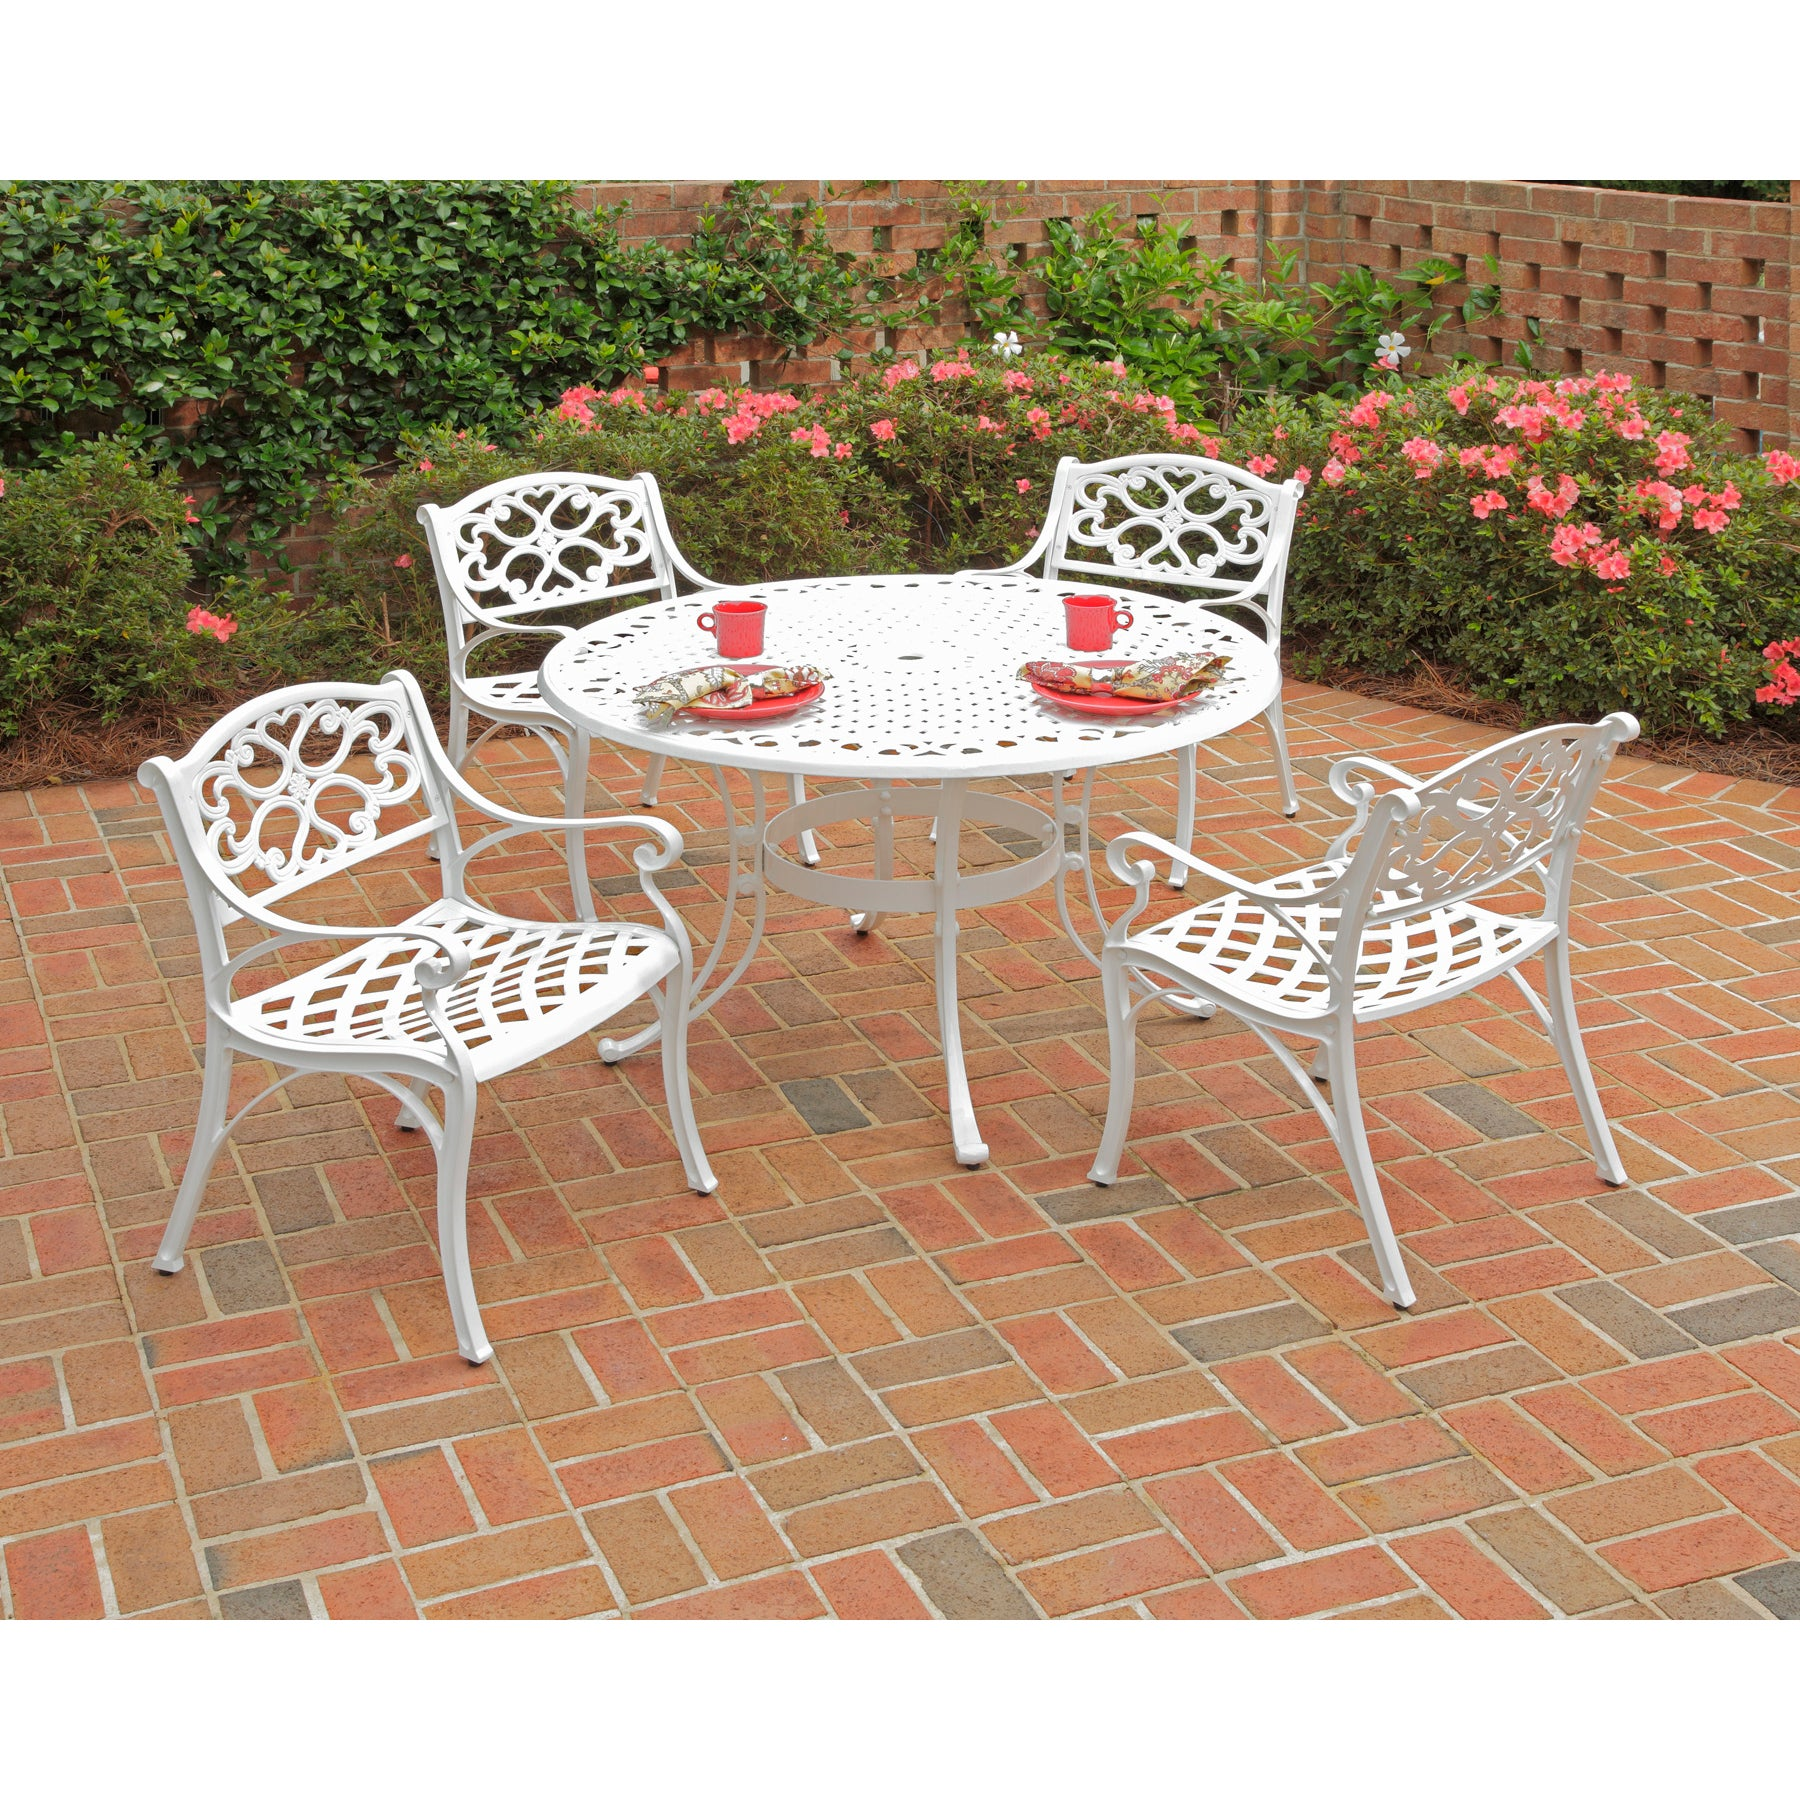 Shop biscayne 48 inch 5 piece white cast aluminum patio dining set by home styles free shipping today overstock 6614286